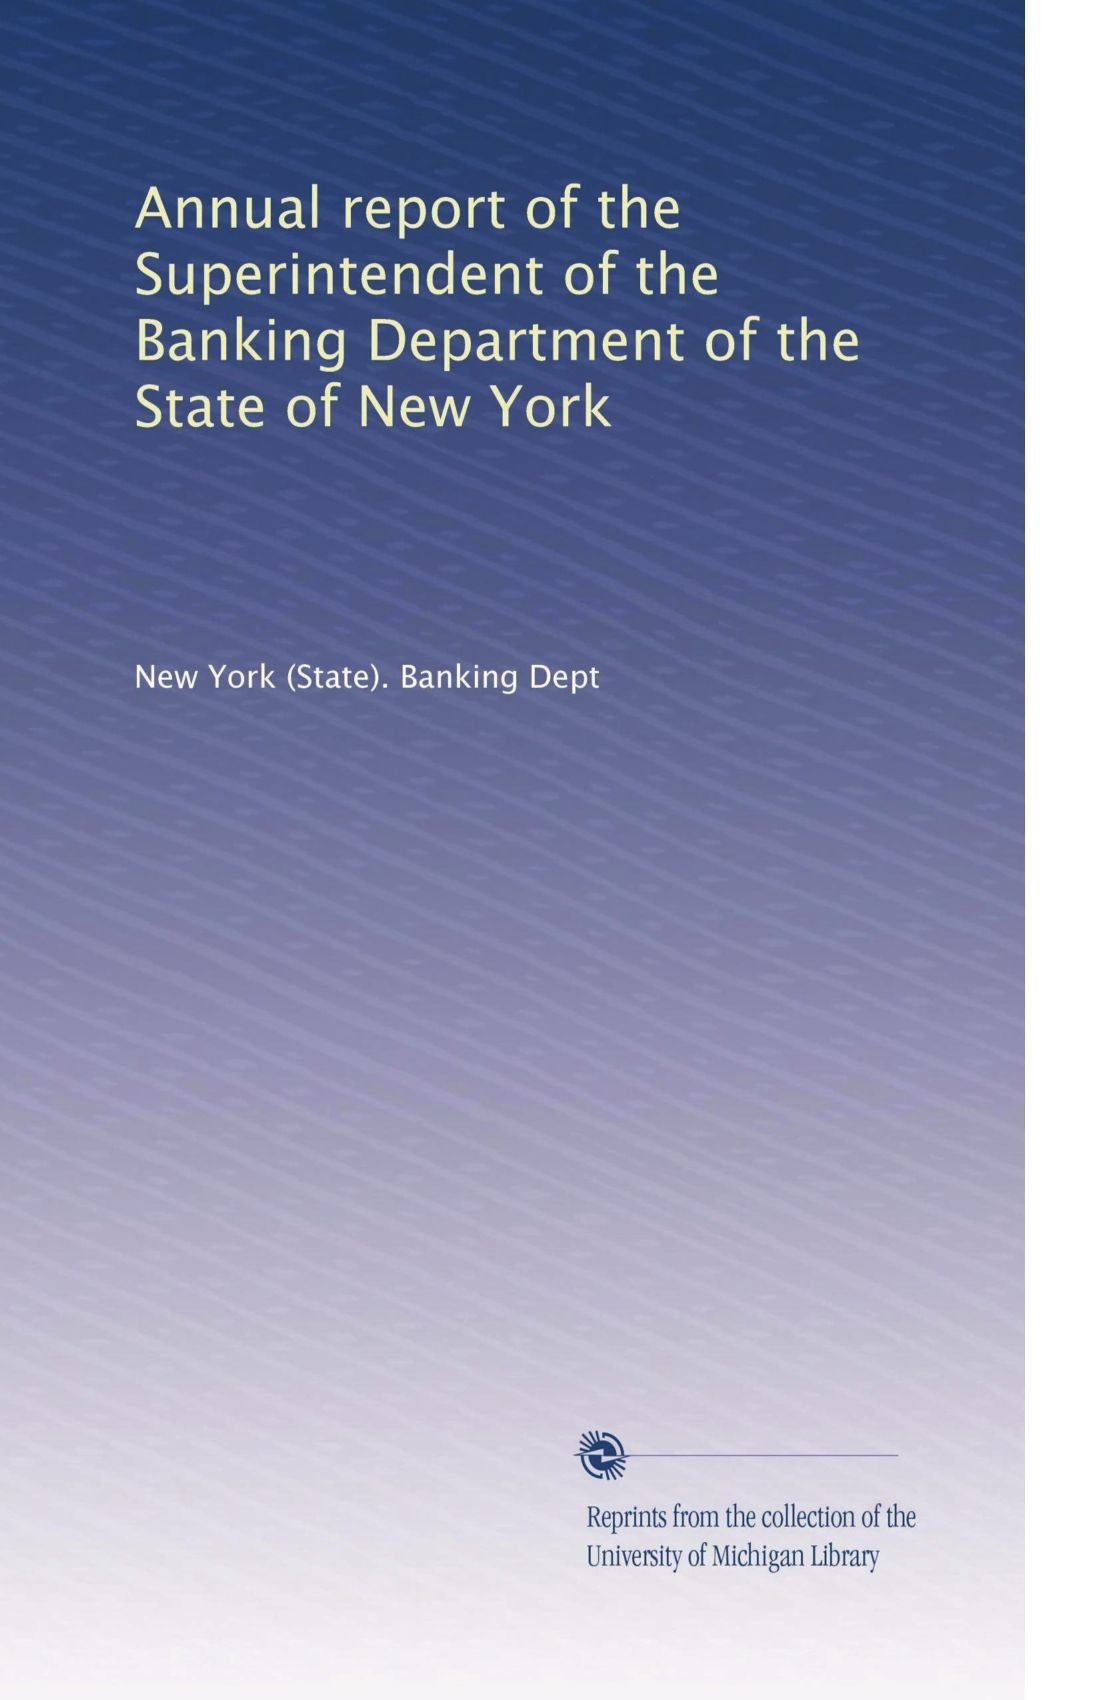 Download Annual report of the Superintendent of the Banking Department of the State of New York (Volume 9) ebook